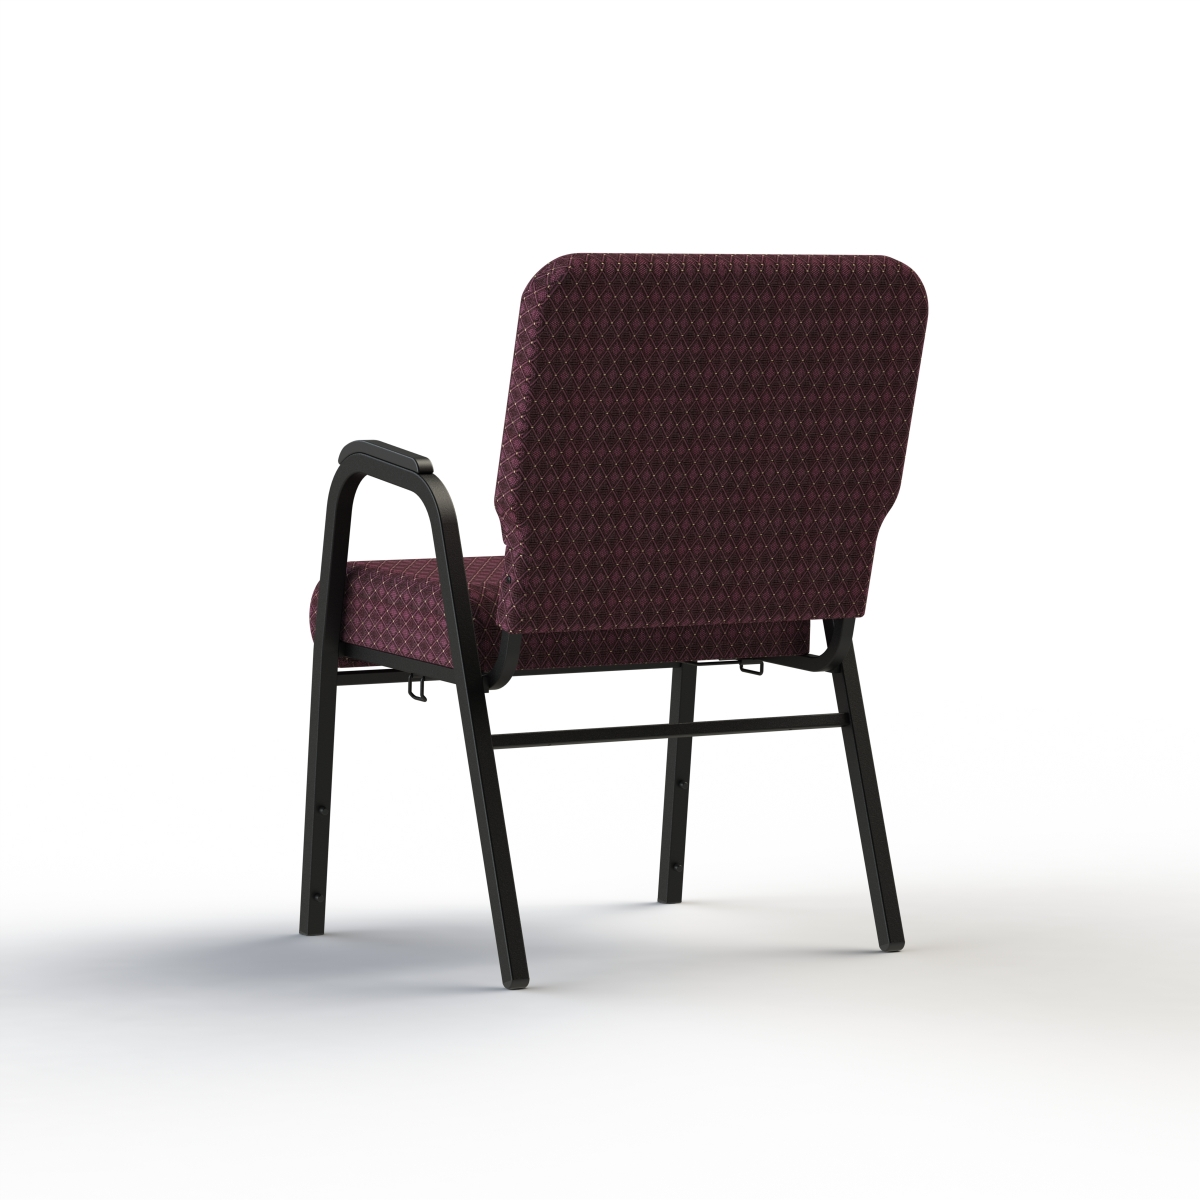 Church chairs with arms -  Cornerstone With Arm Rests Rear View